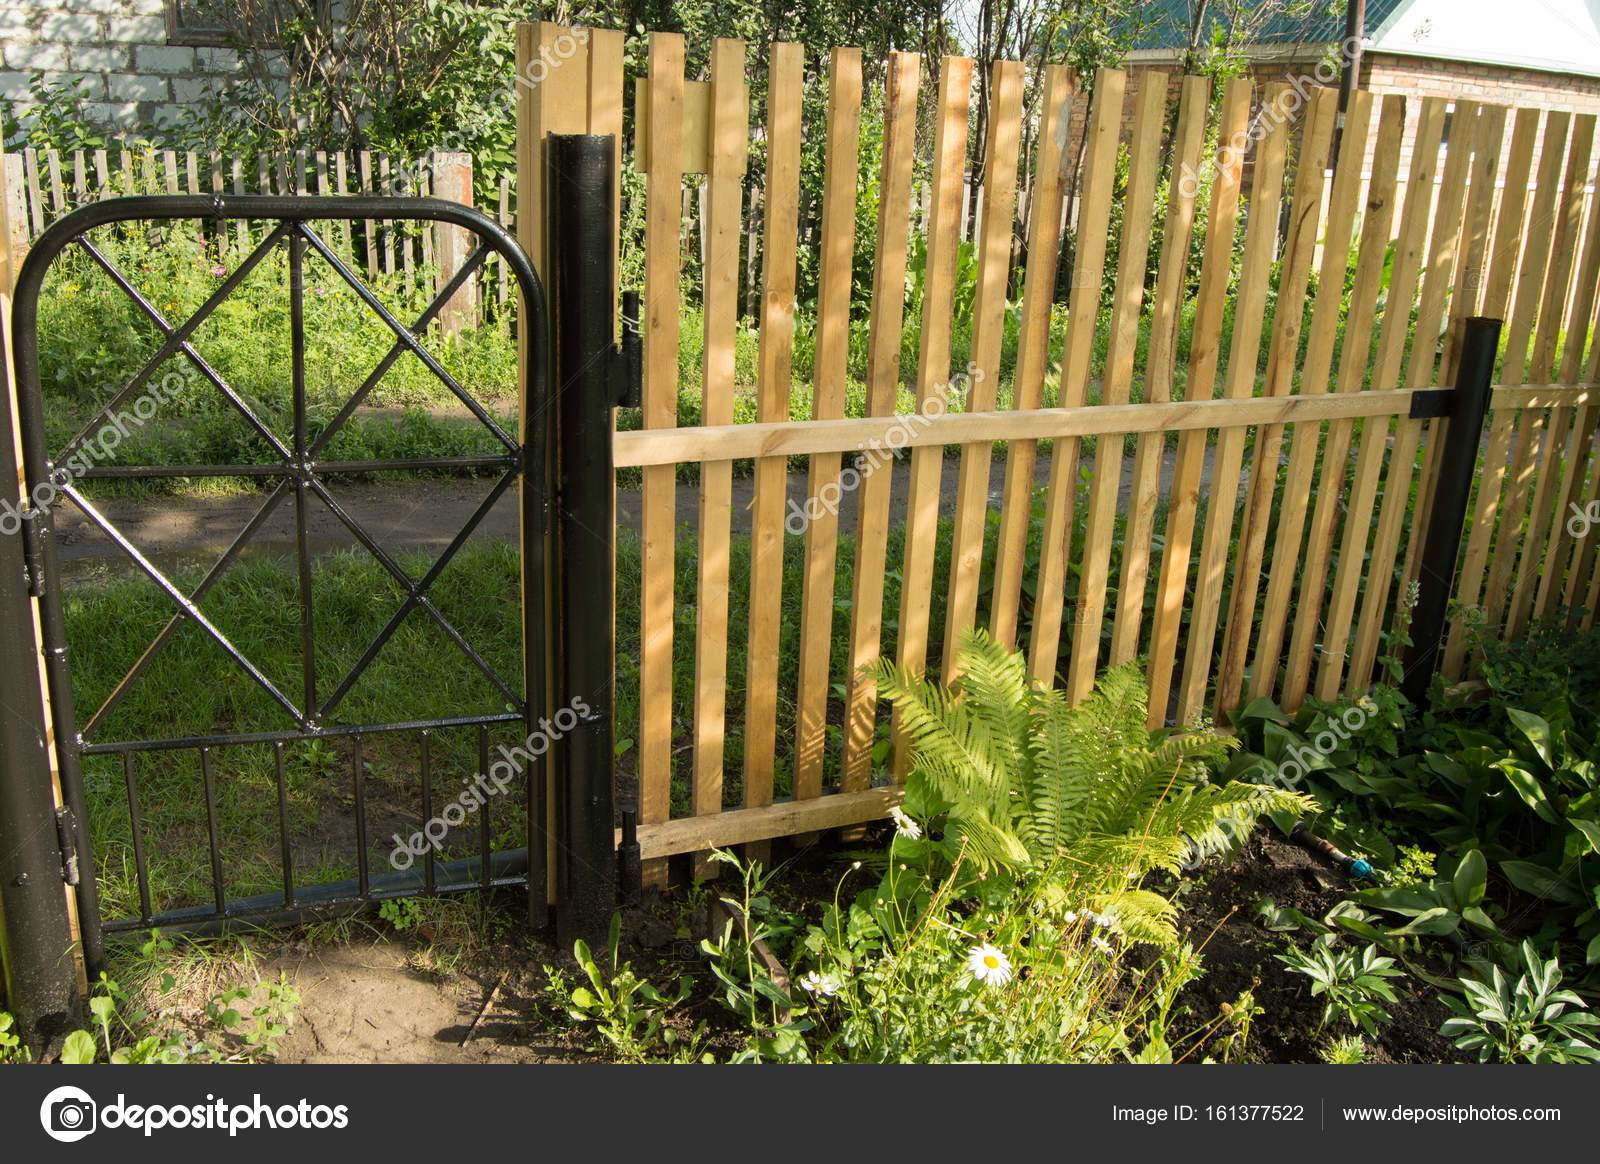 depositphotos stock photo new picket fence and black